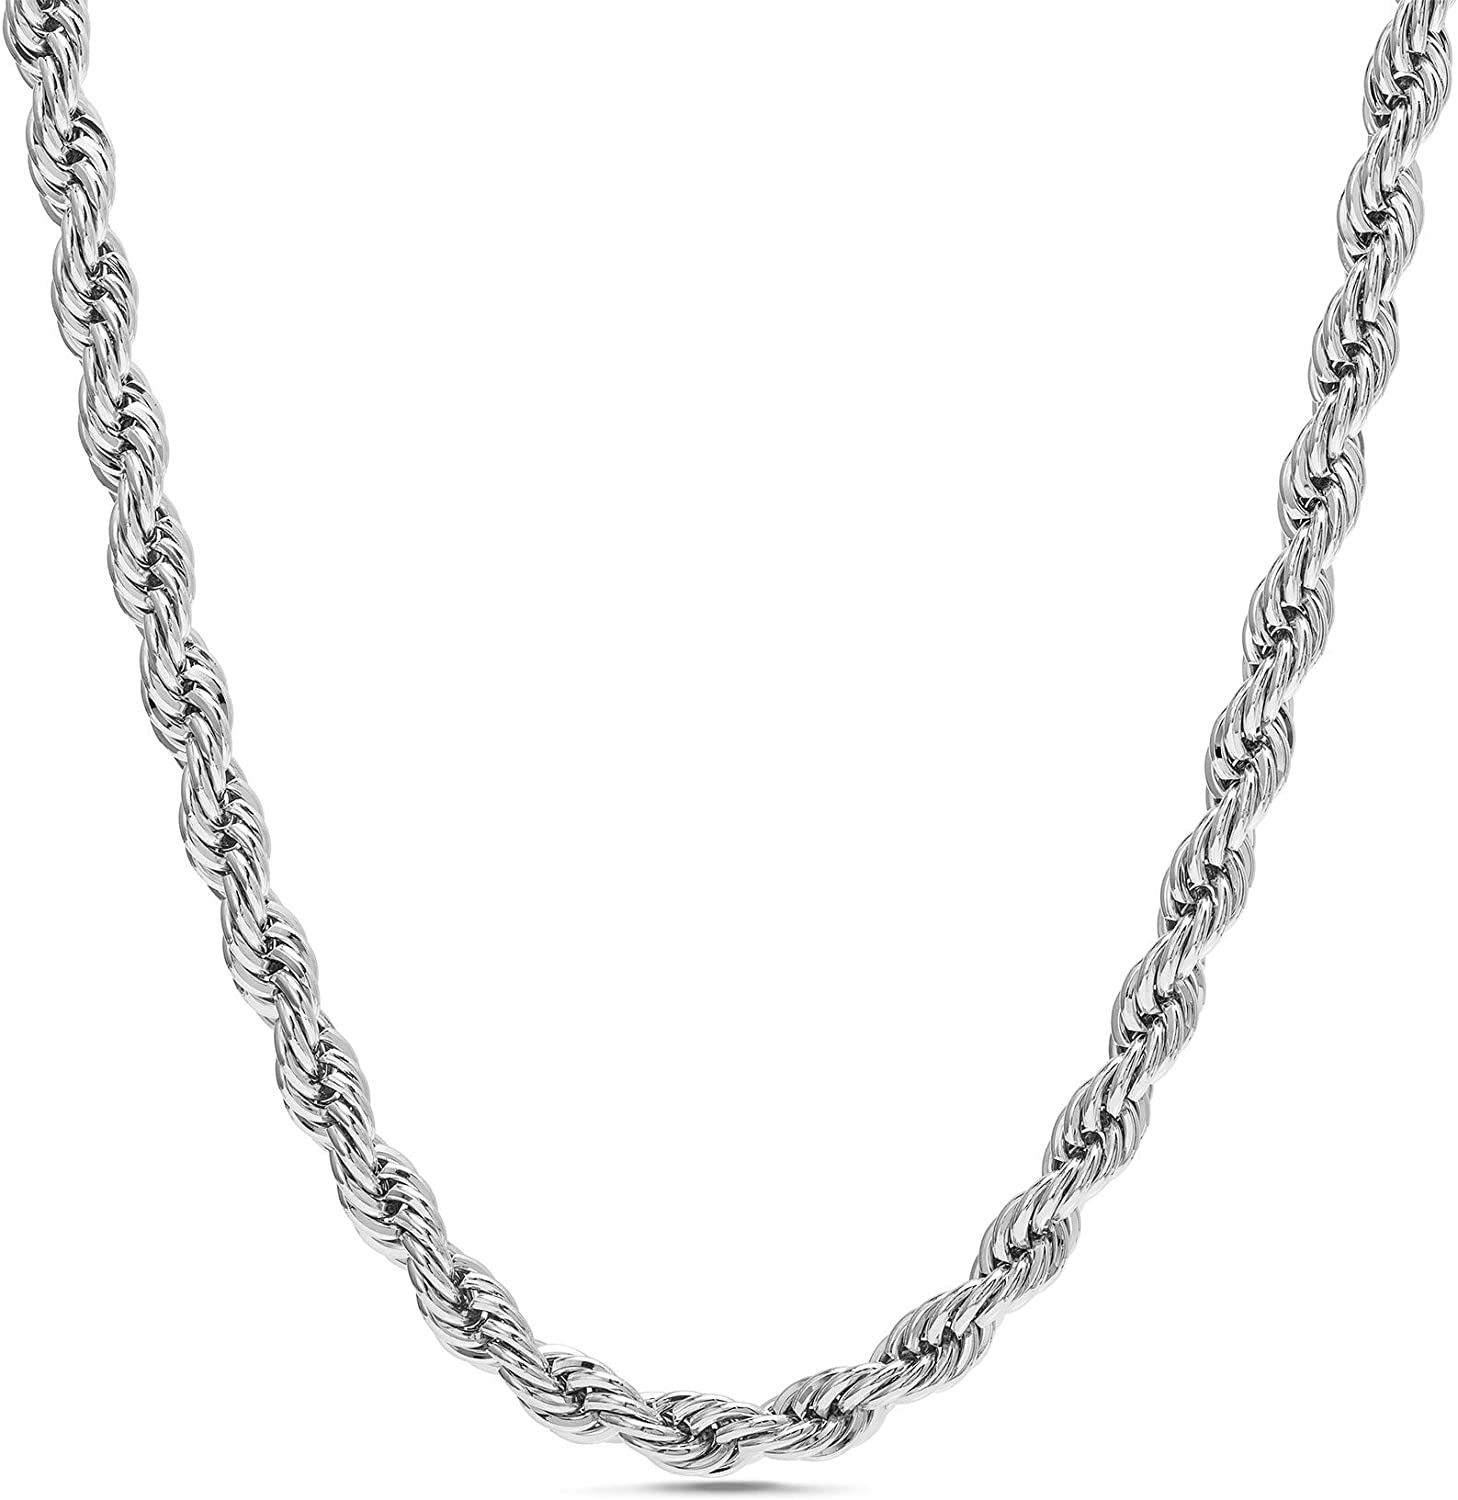 Nautica 2mm Dedication - 8mm Rope Chain Necklace Rhodiu or for in Women Men Max 90% OFF